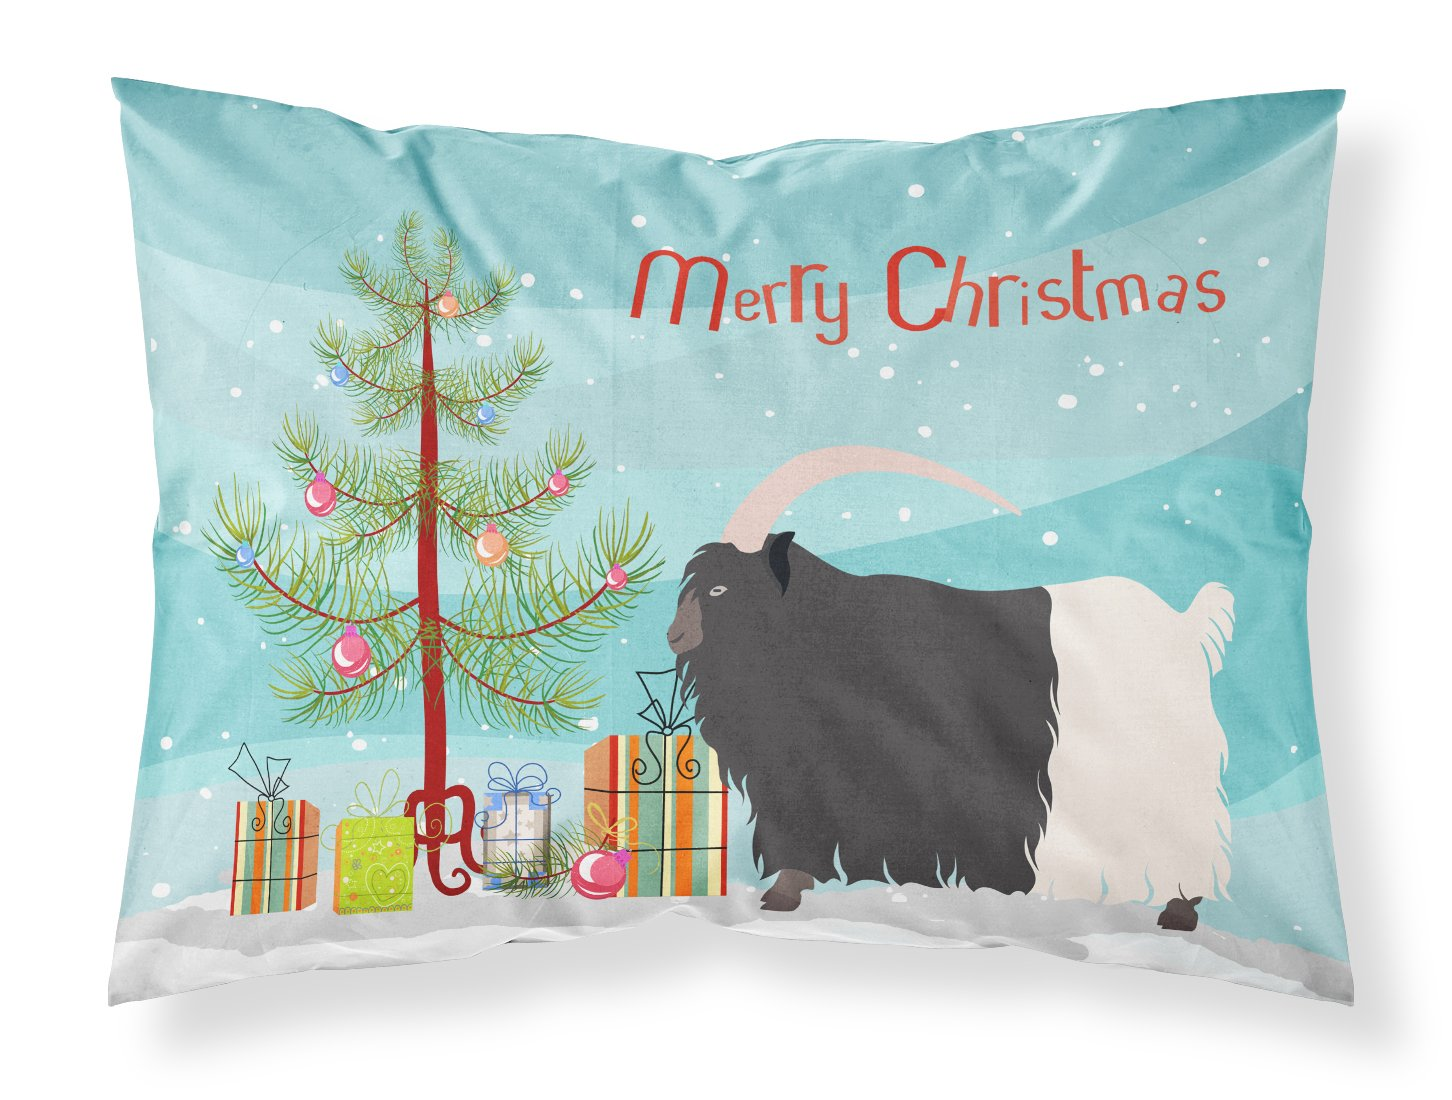 Welsh Black-Necked Goat Christmas Fabric Standard Pillowcase BB9254PILLOWCASE by Caroline's Treasures